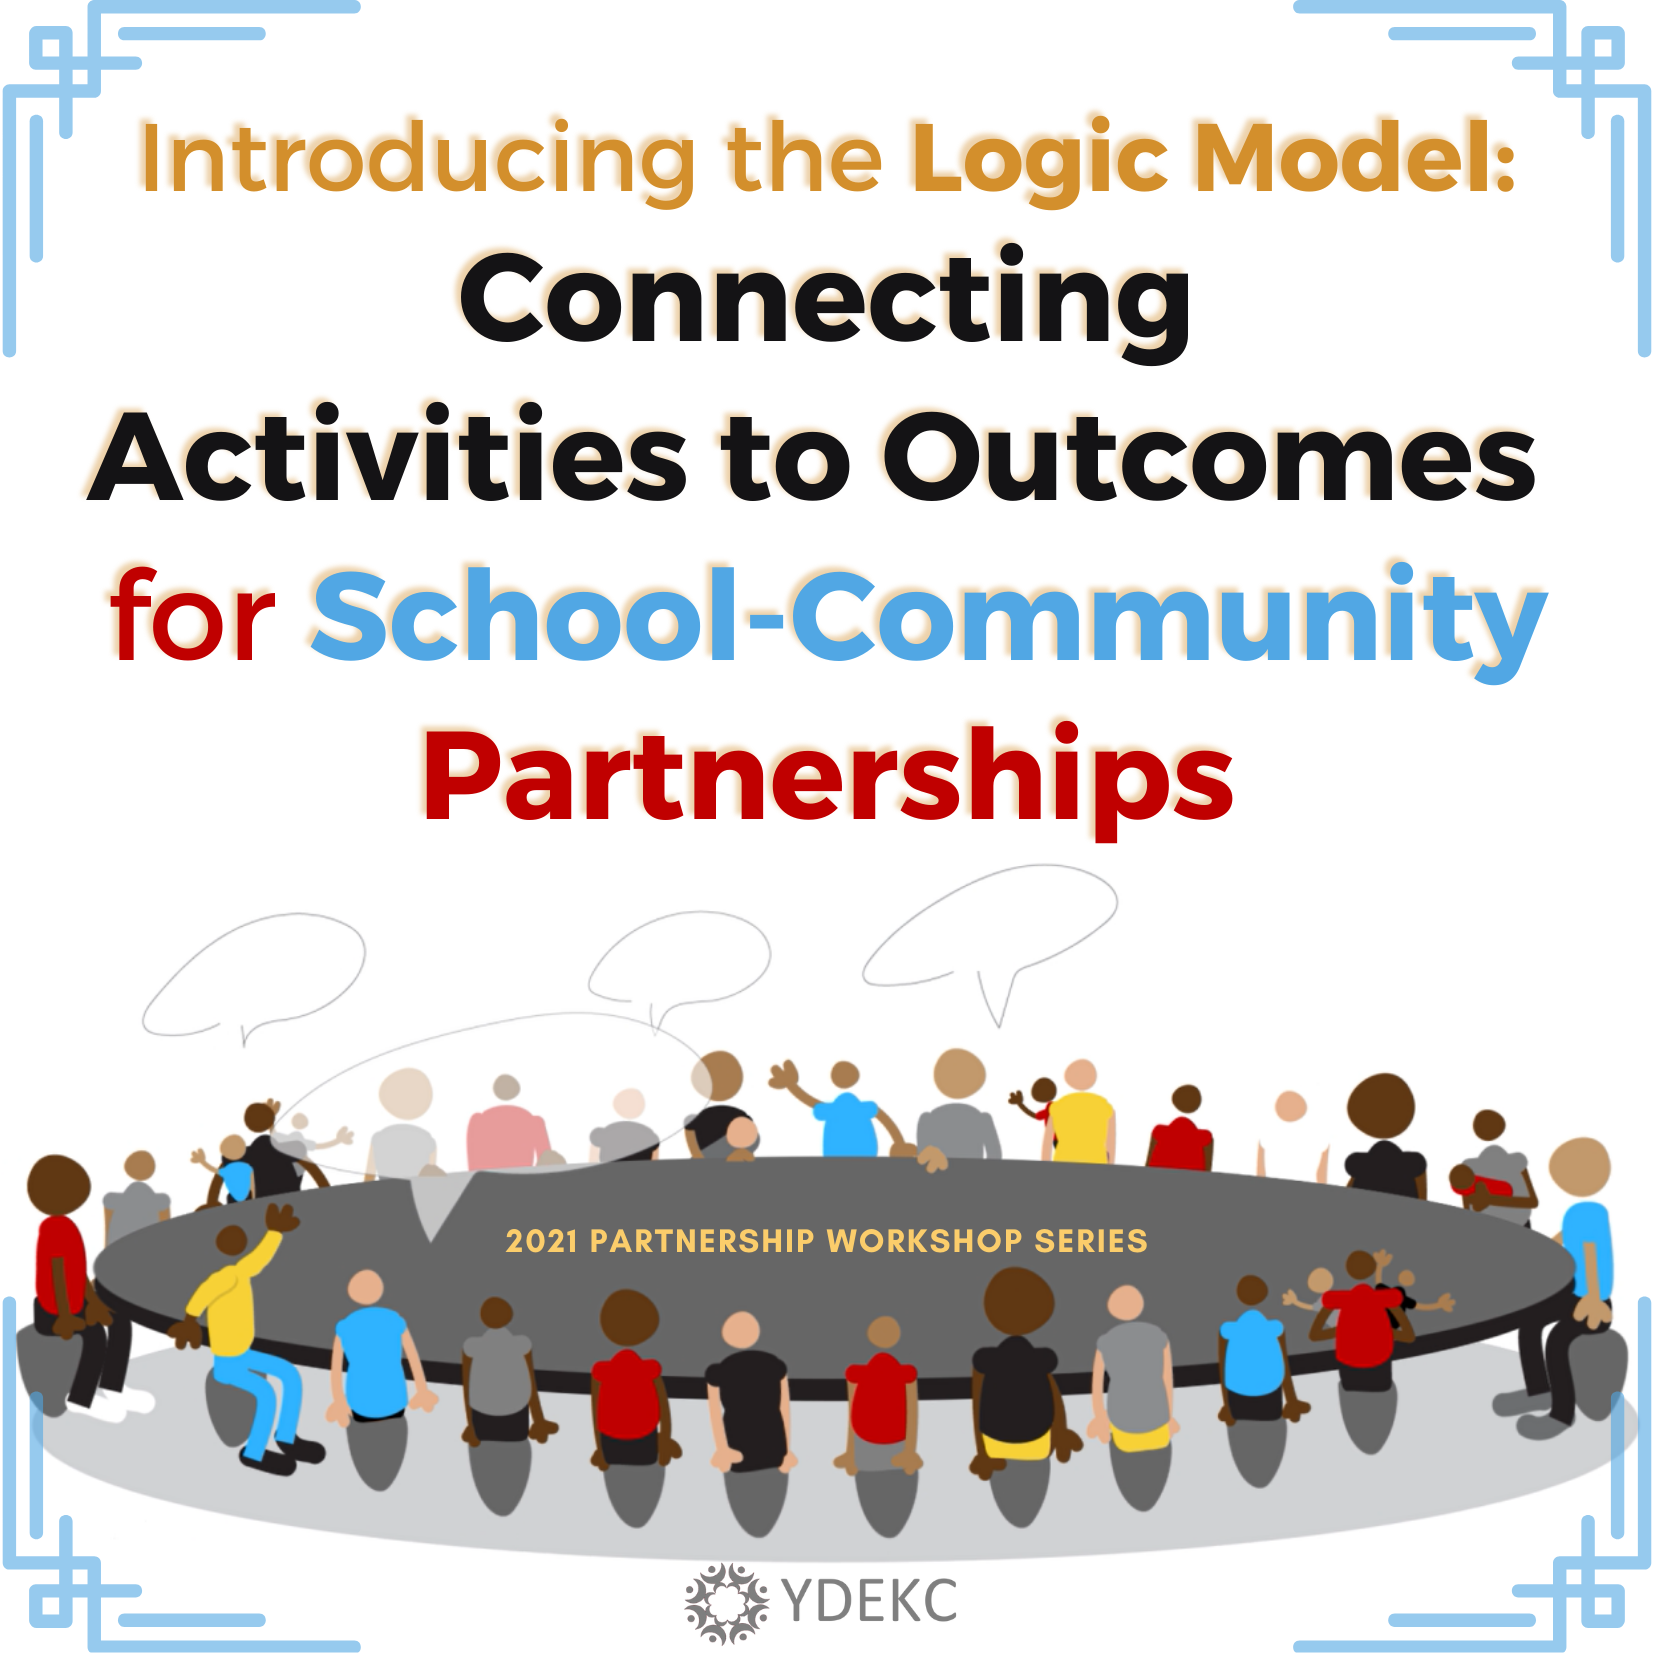 Introducing the Logic Model: Connecting Activities to Outcomes for School-Community Partnerships